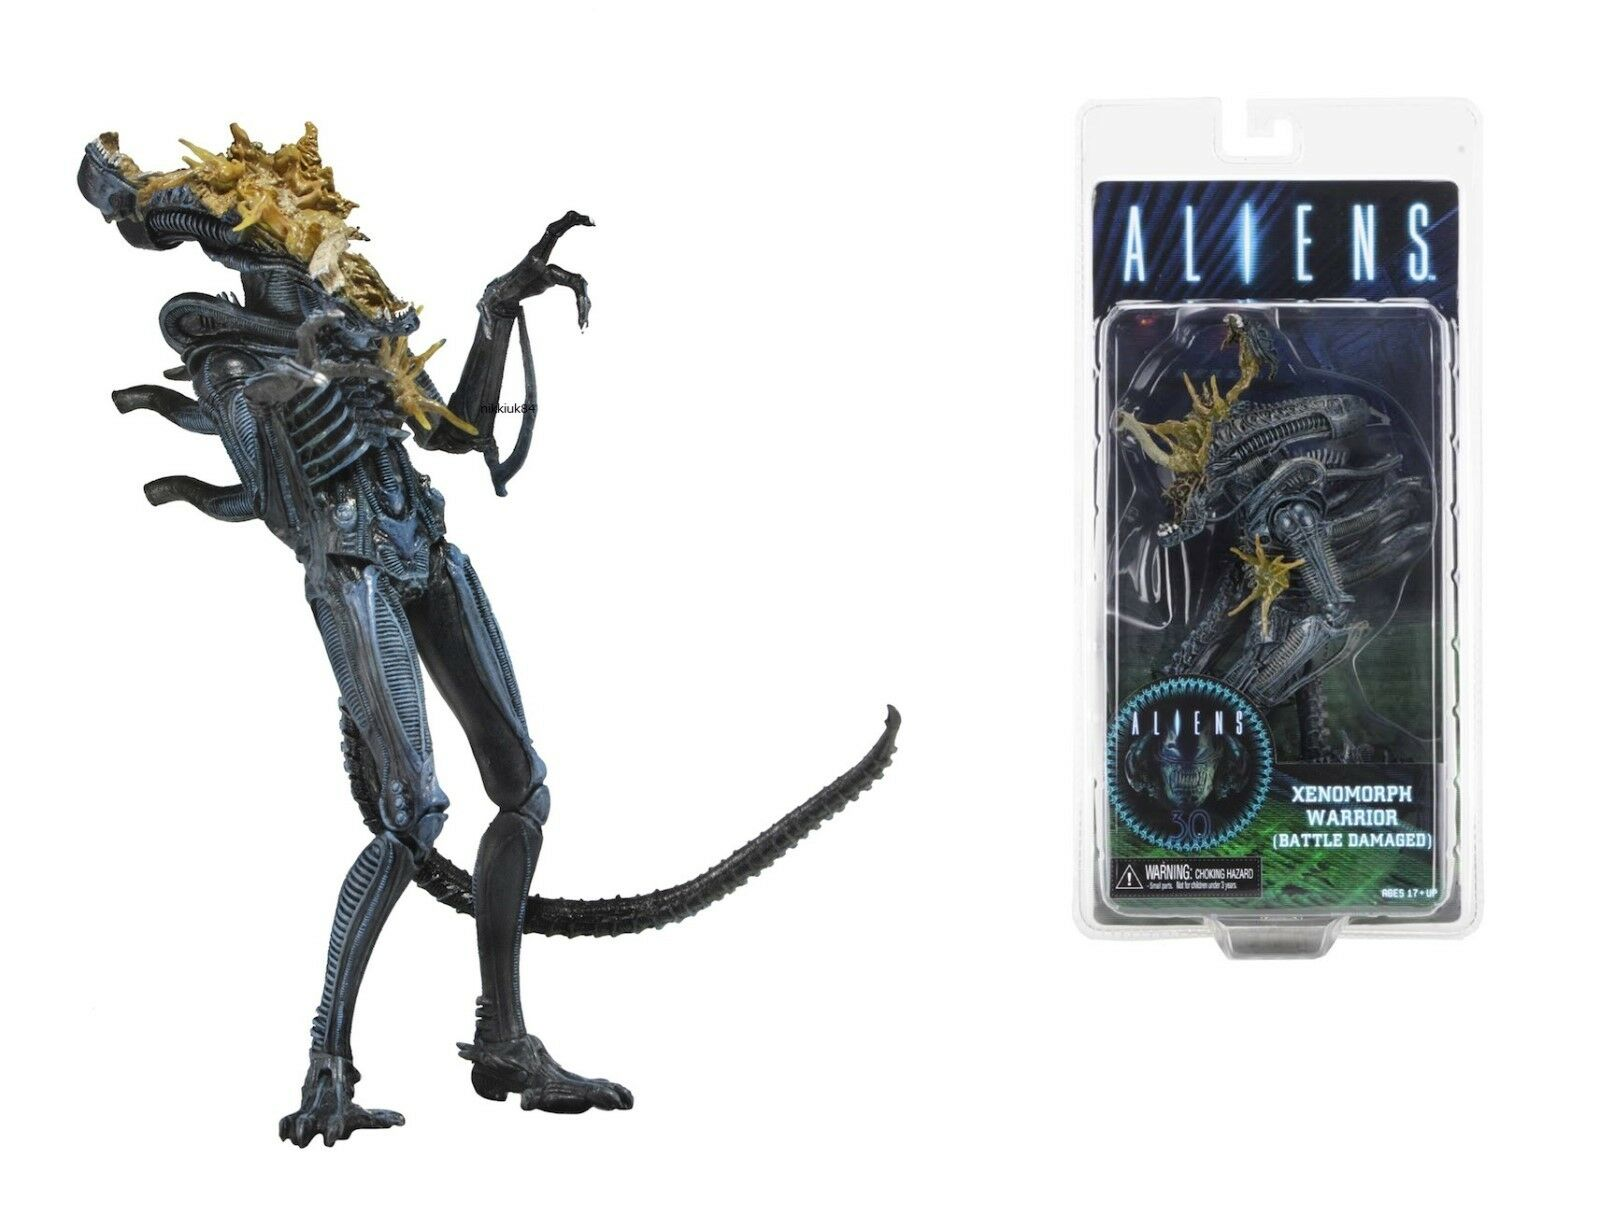 NECA ALIENS SERIES 12 BATTLE DAMAGED blueE WARRIOR WARRIOR WARRIOR ALIEN 9  ACTION FIGURE - 23cm 4aec1b